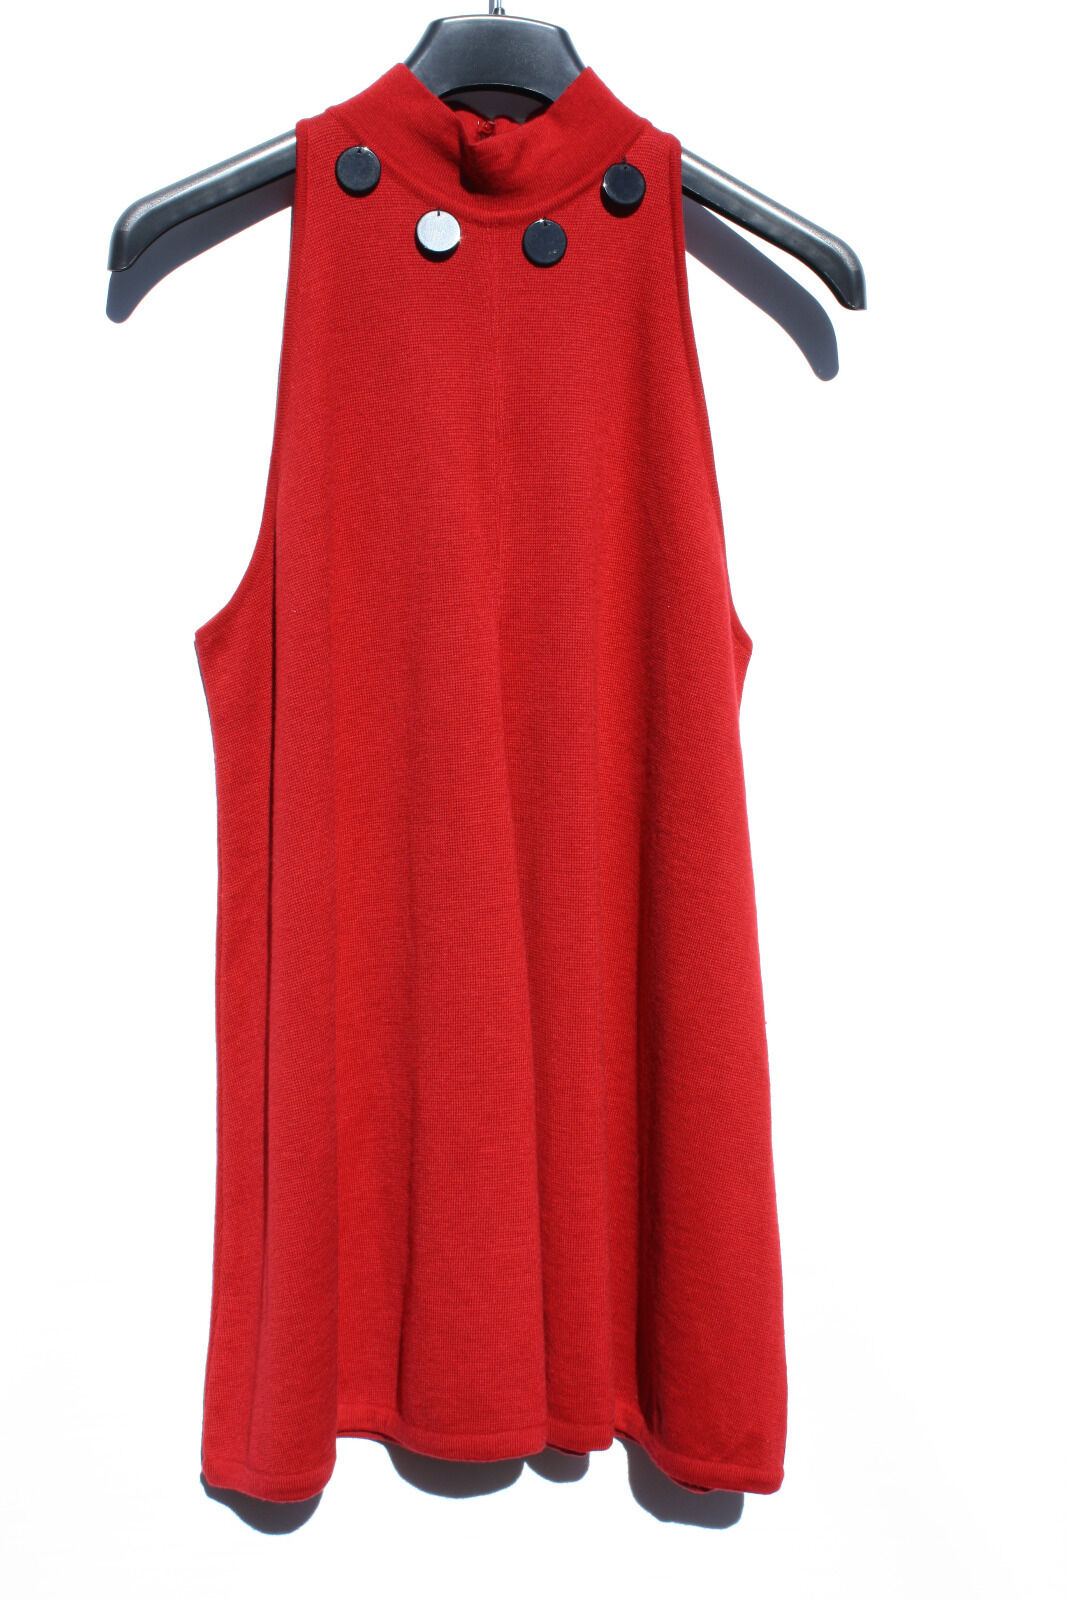 VINTAGE NWT RoccoBarocco Knitwear RED Dress 100% Merino  Sleevelees US 10